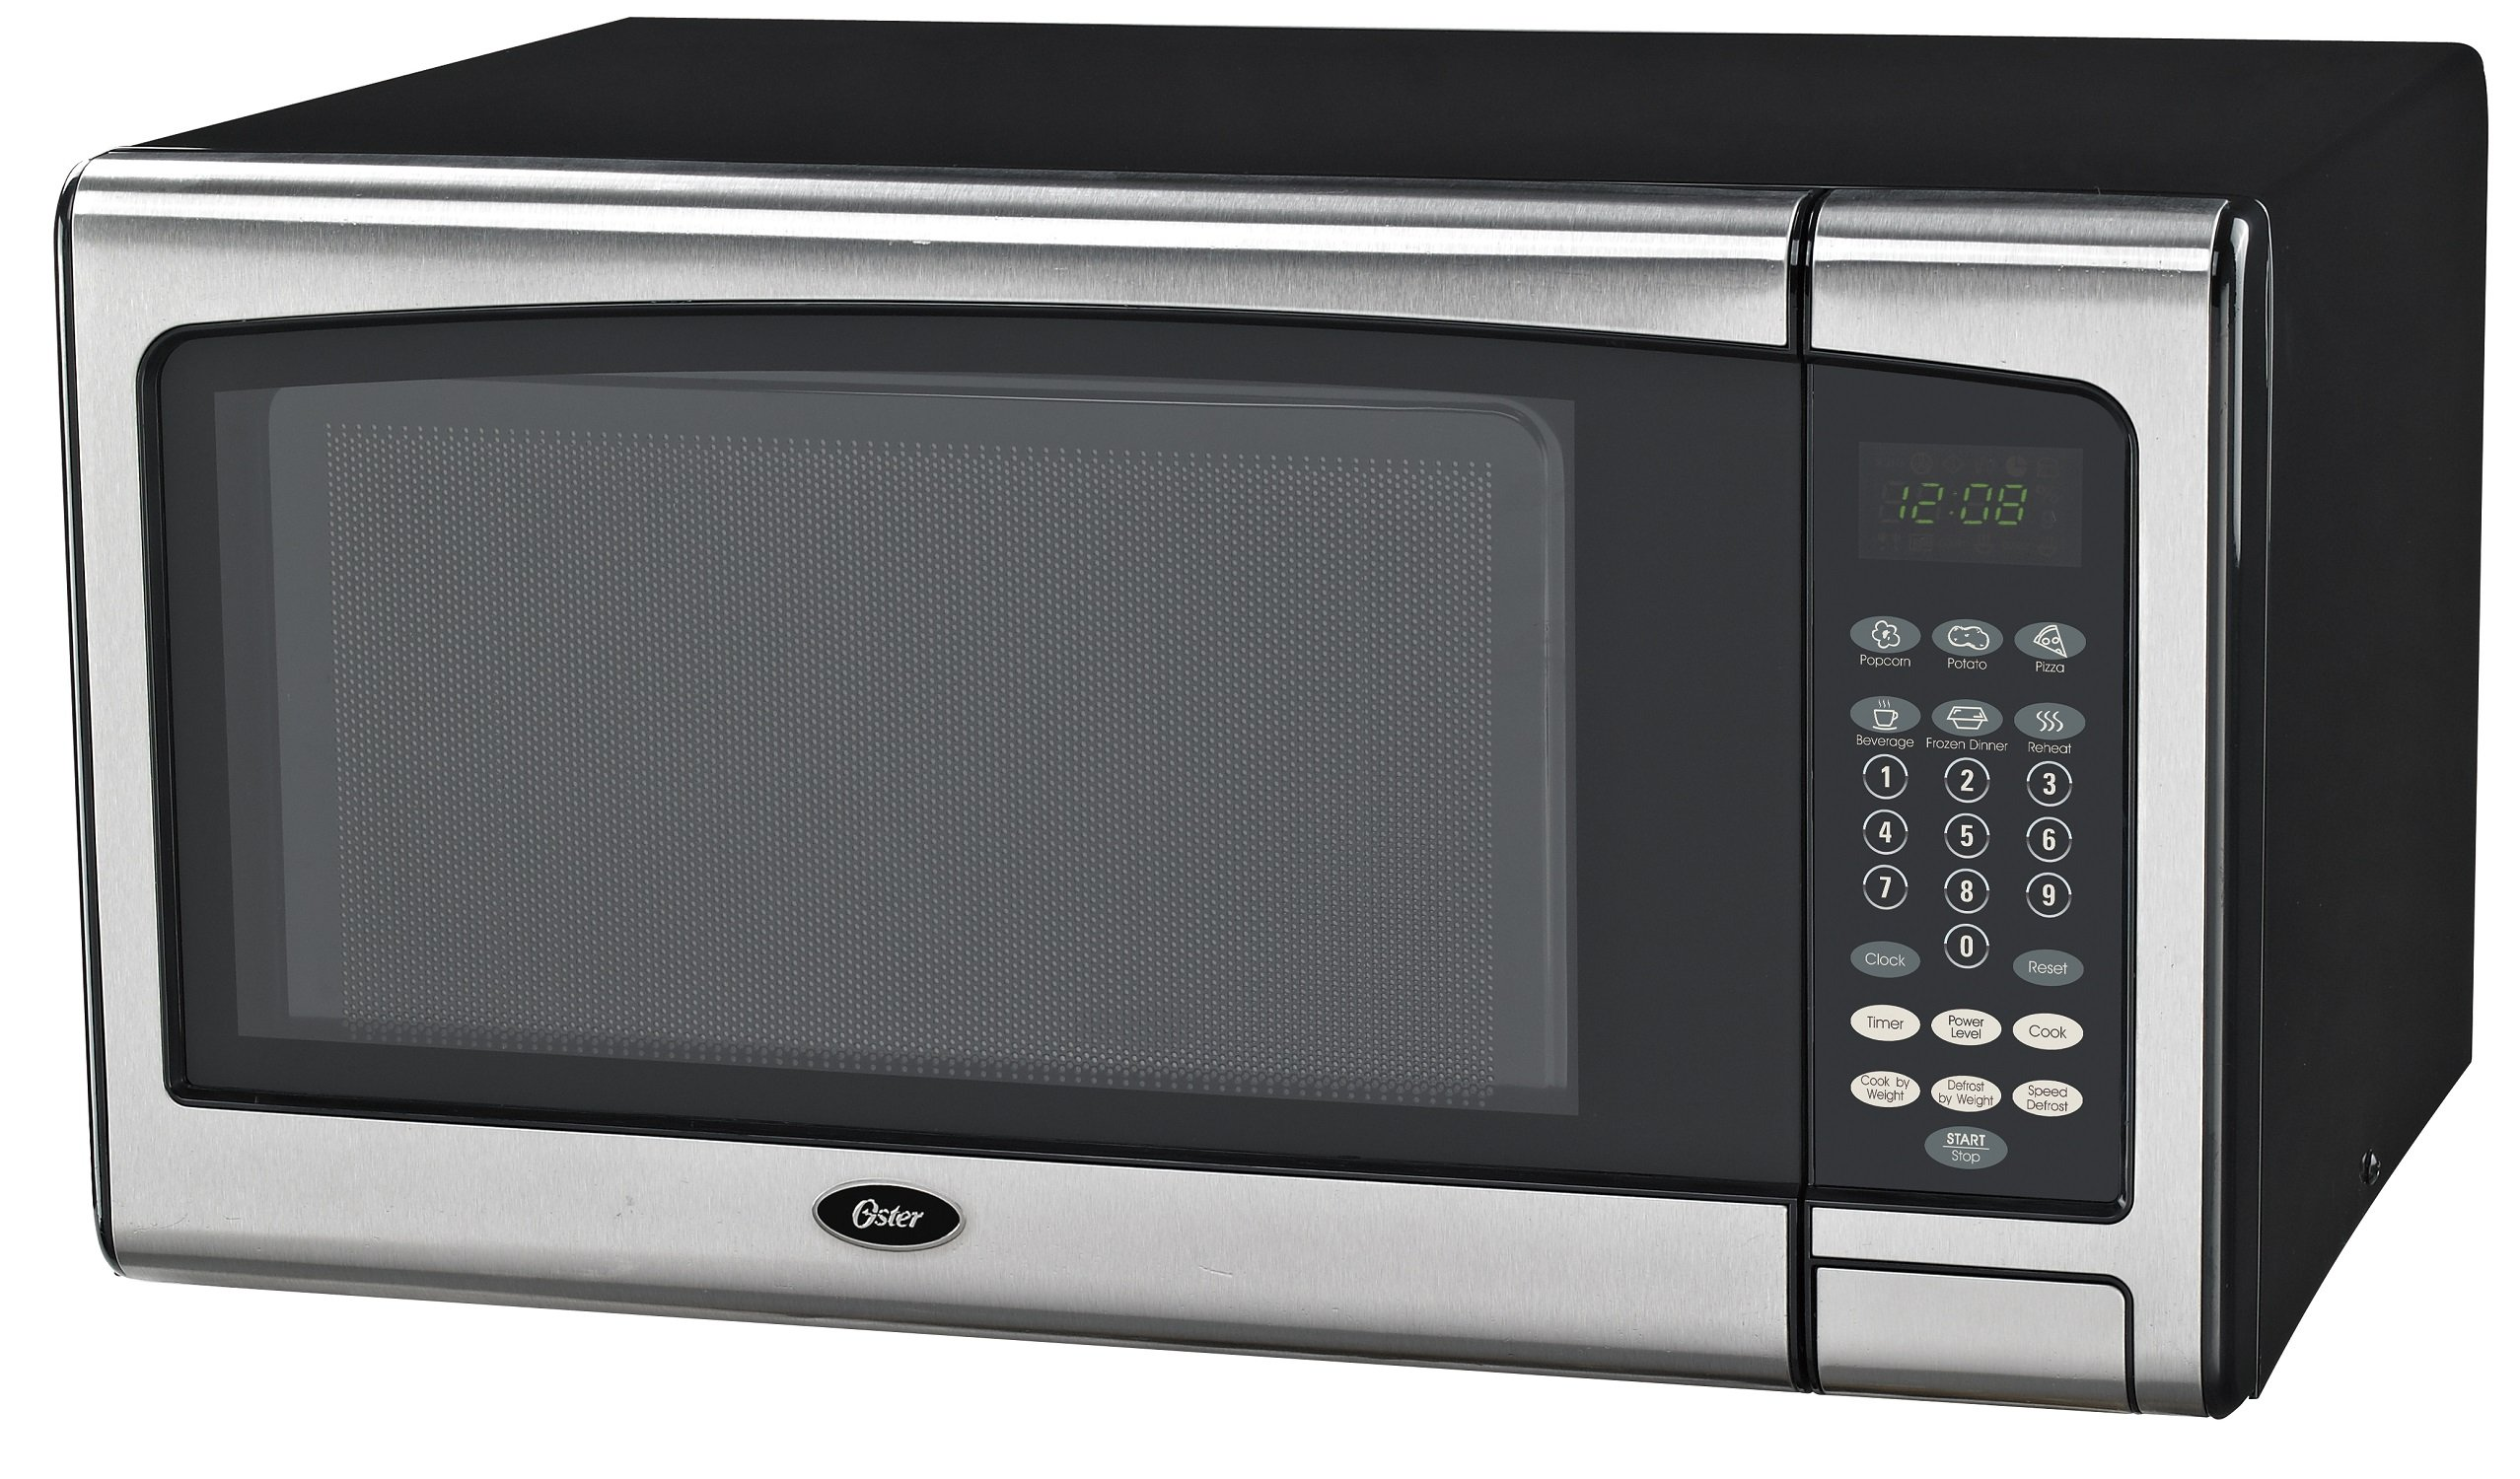 Oster OGSMJ411S2-10 1.1 cu. Ft. Microwave Oven, Stainless Steel by Oster